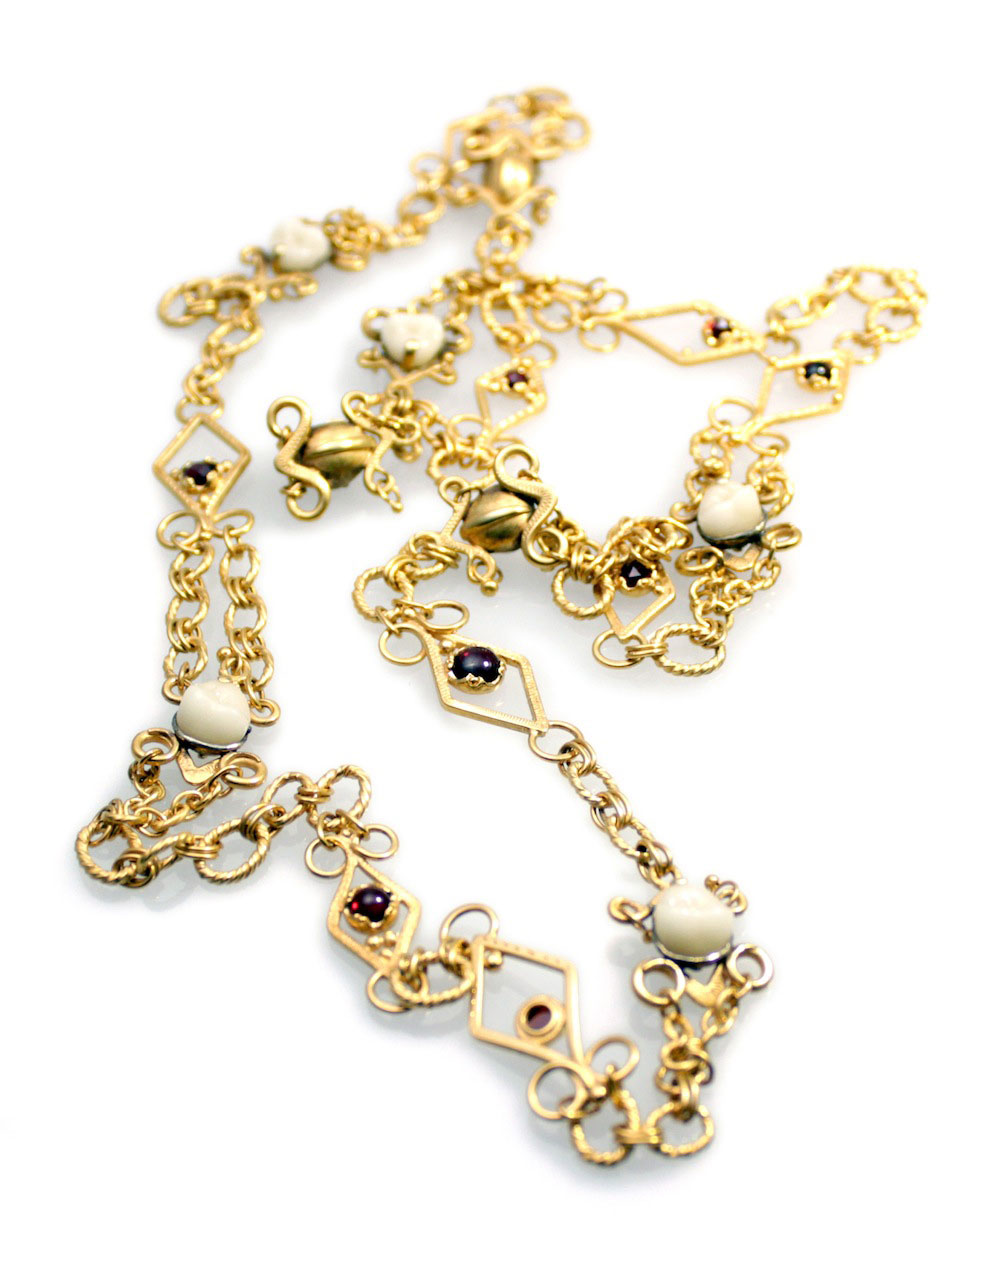 Anastasia Young. Necklace: Chain Dentata, 2011. 24 ct gold vermell on fine and sterling silver, porcelain crowns, garnets. 100 cm.